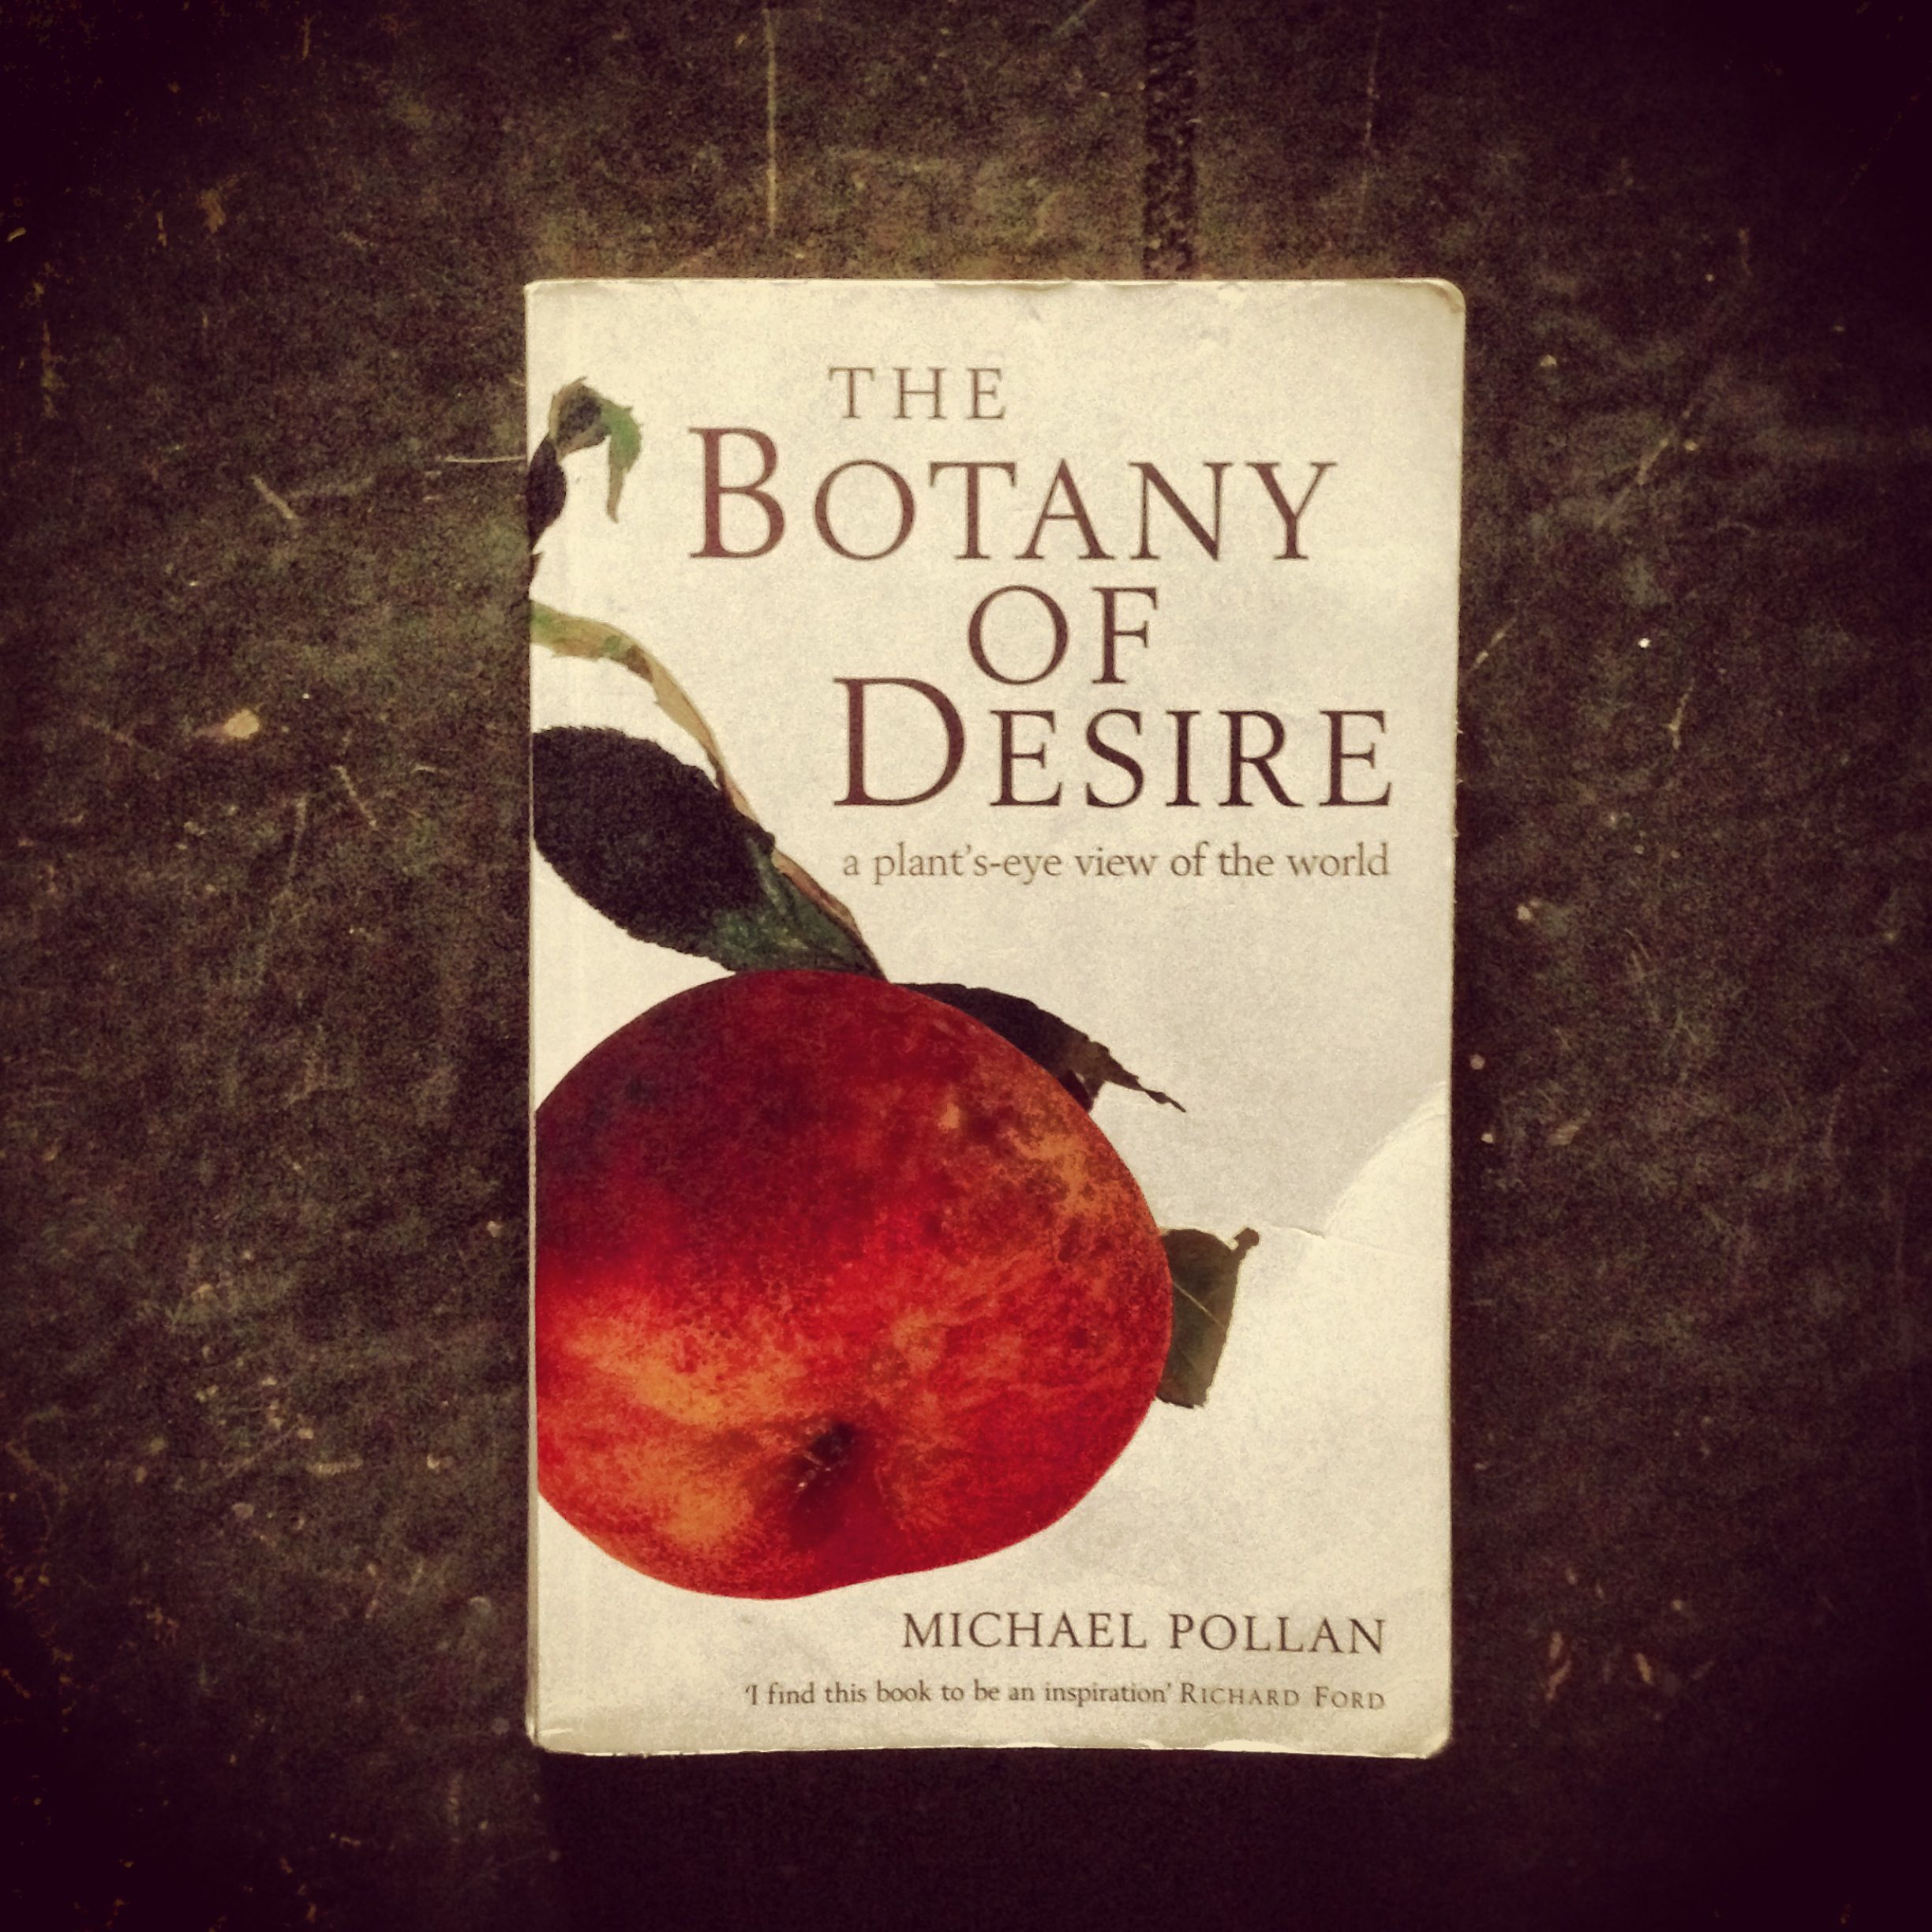 an analysis of the botany of desire by michael pollan Featuring michael pollan and based on his best-selling book, this special takes   this guide to the botany of desire, the pbs television documentary based on.